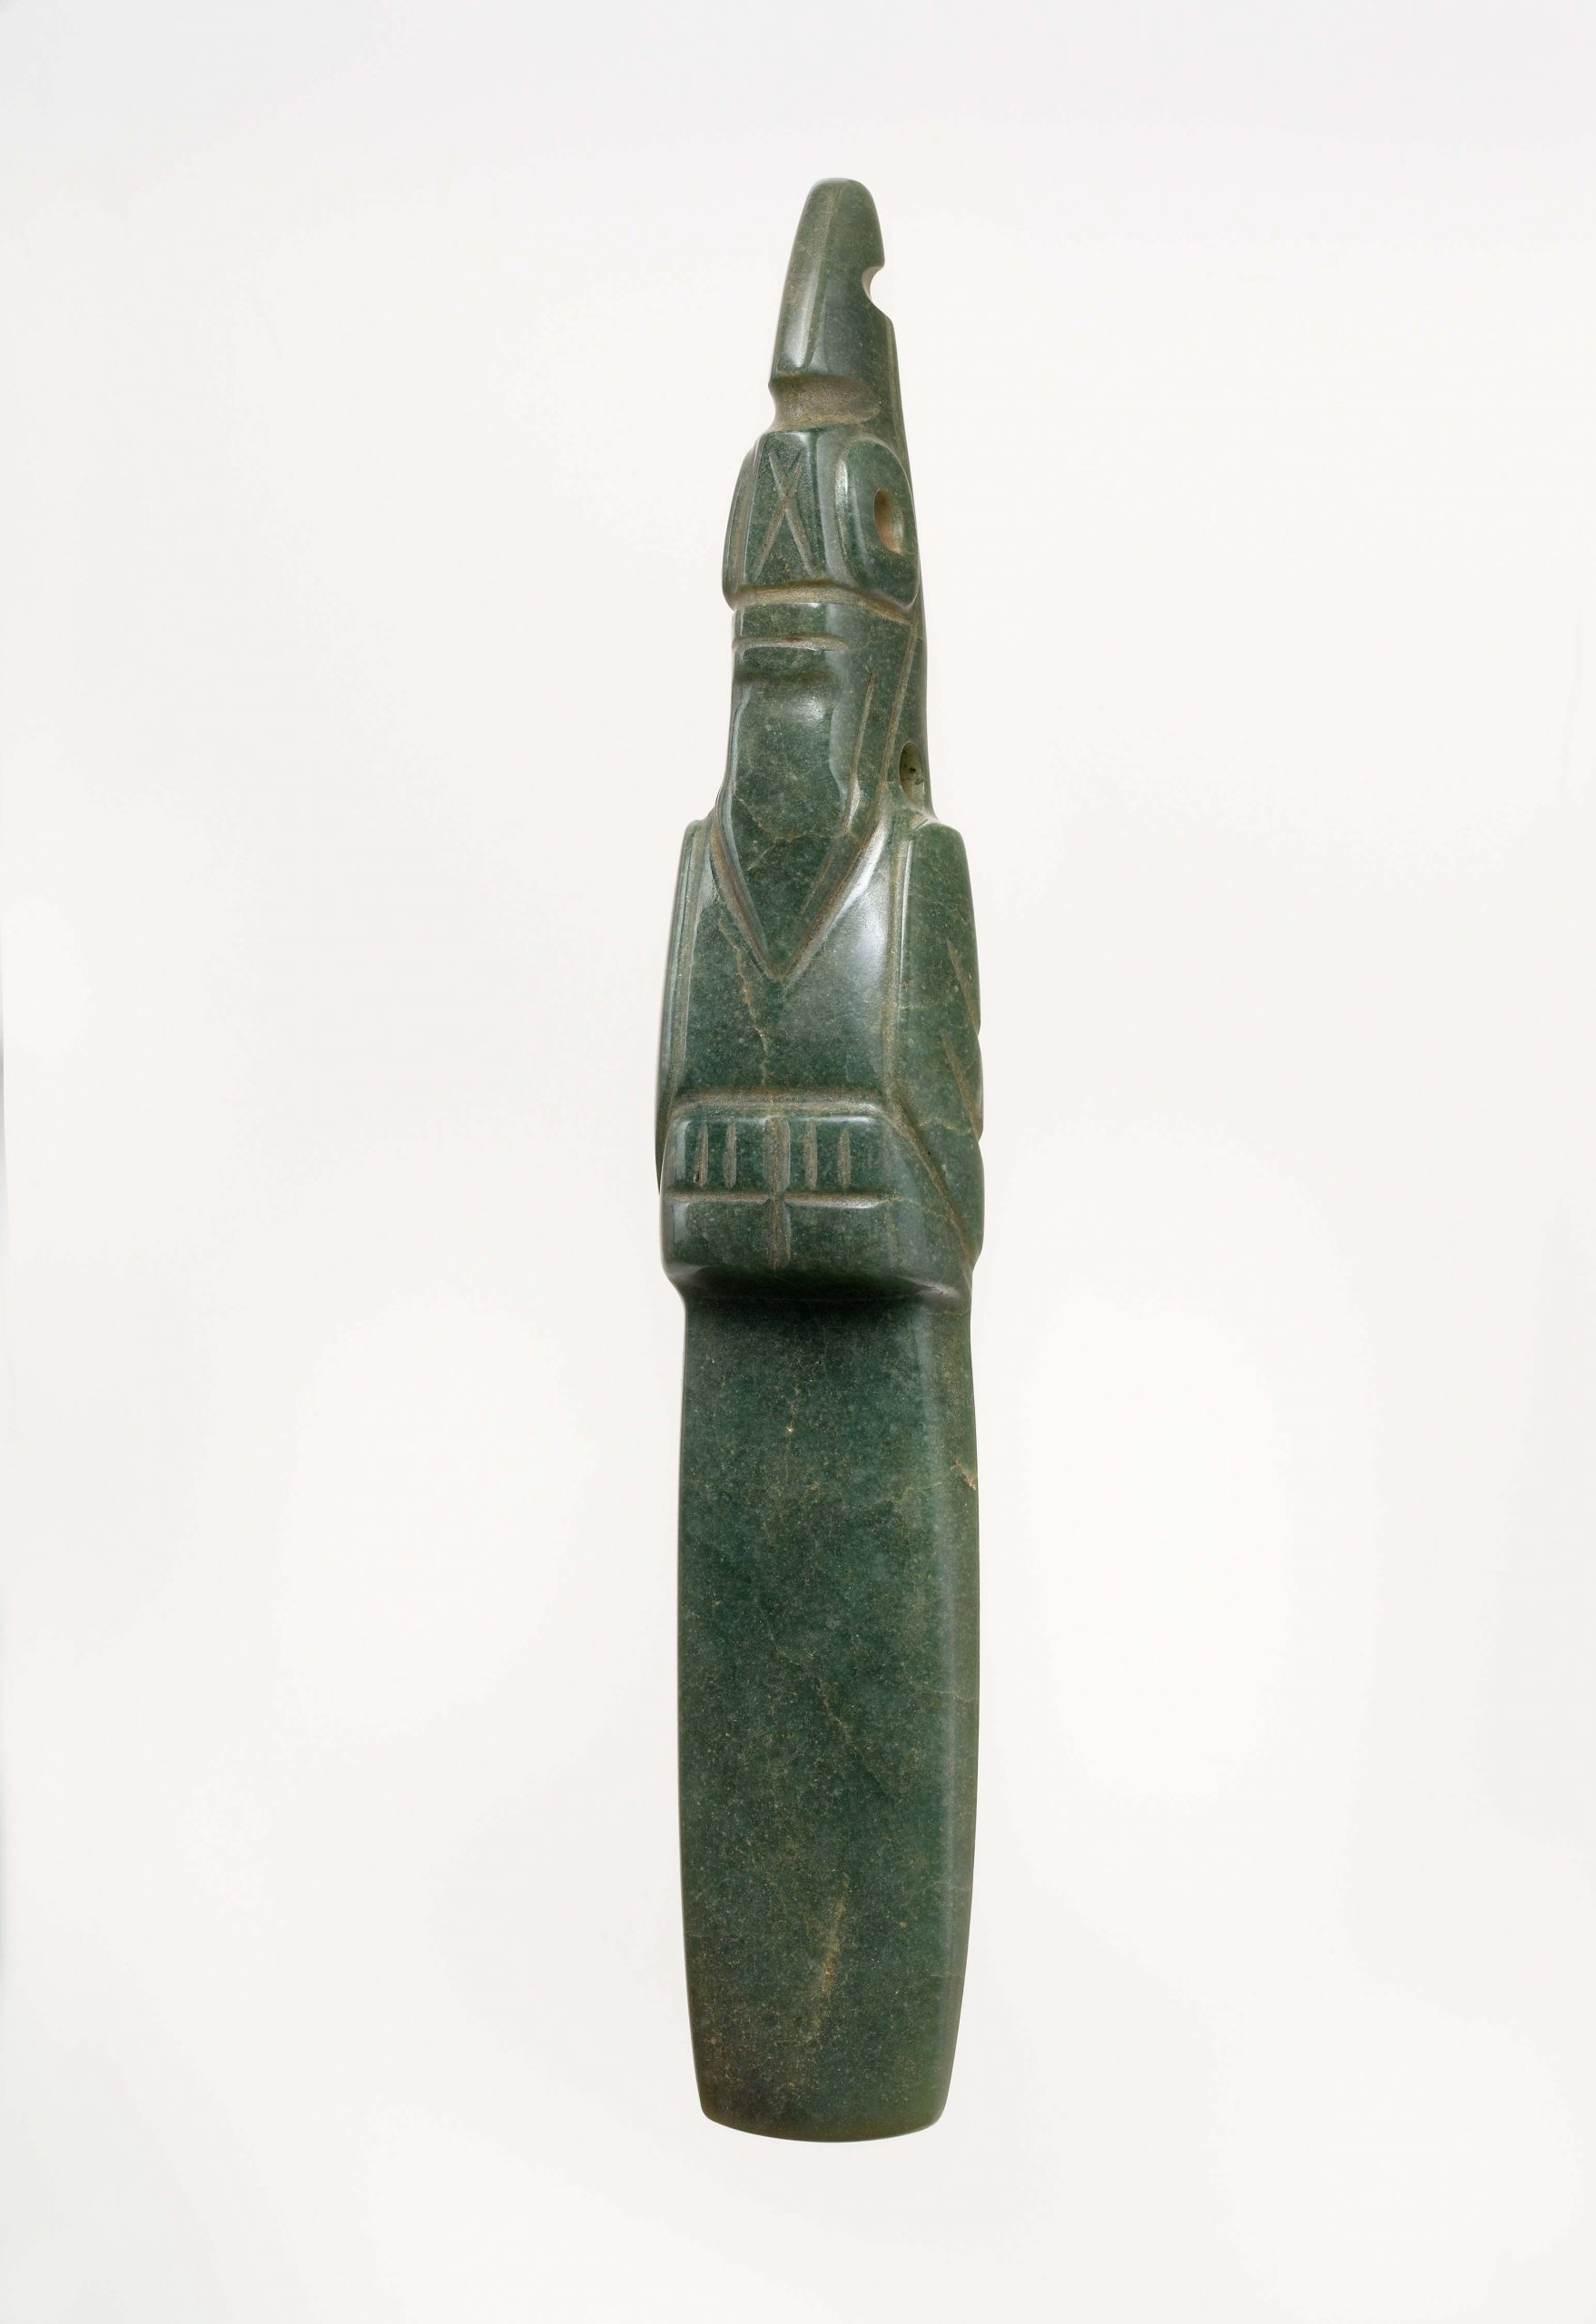 Green celt with the handle carved in the shape of a parrot.